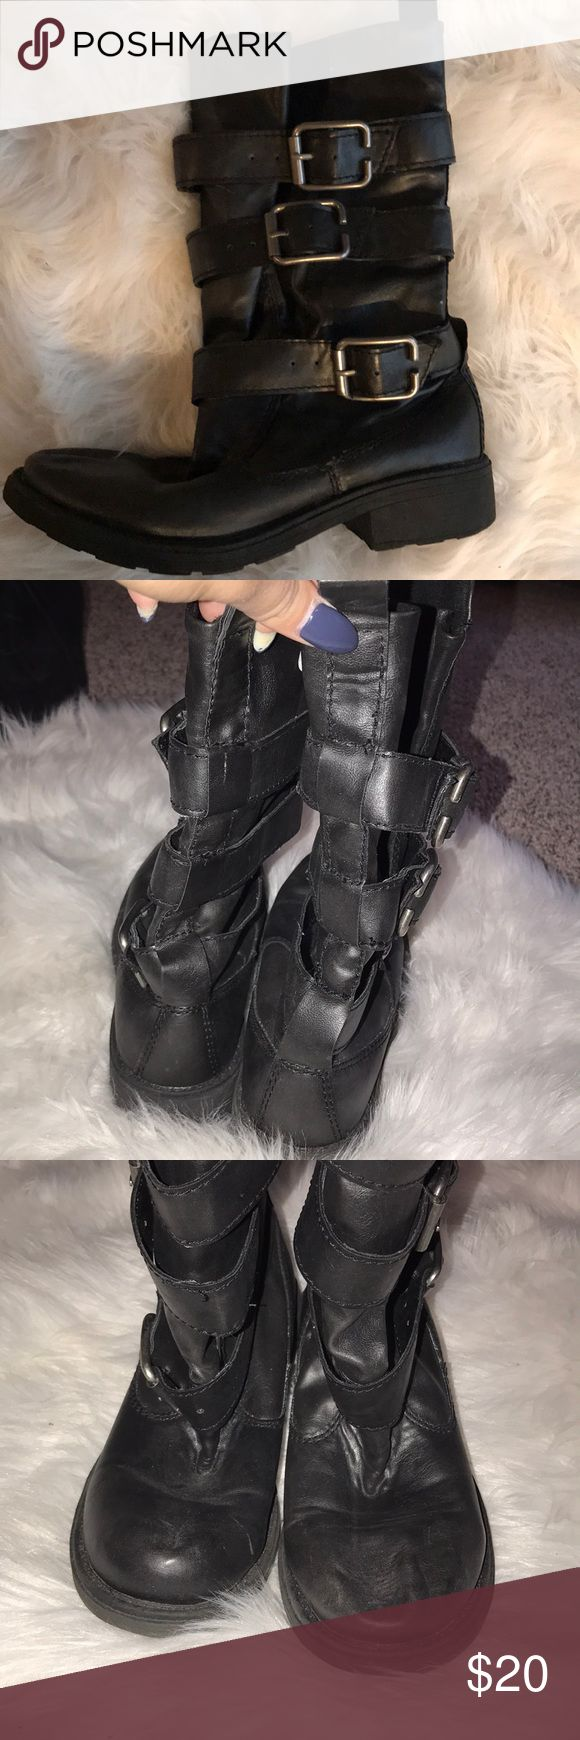 Big Buddha boots Black, silver buckles, women's size 6.5, good condition Big Buddha Shoes Combat & Moto Boots